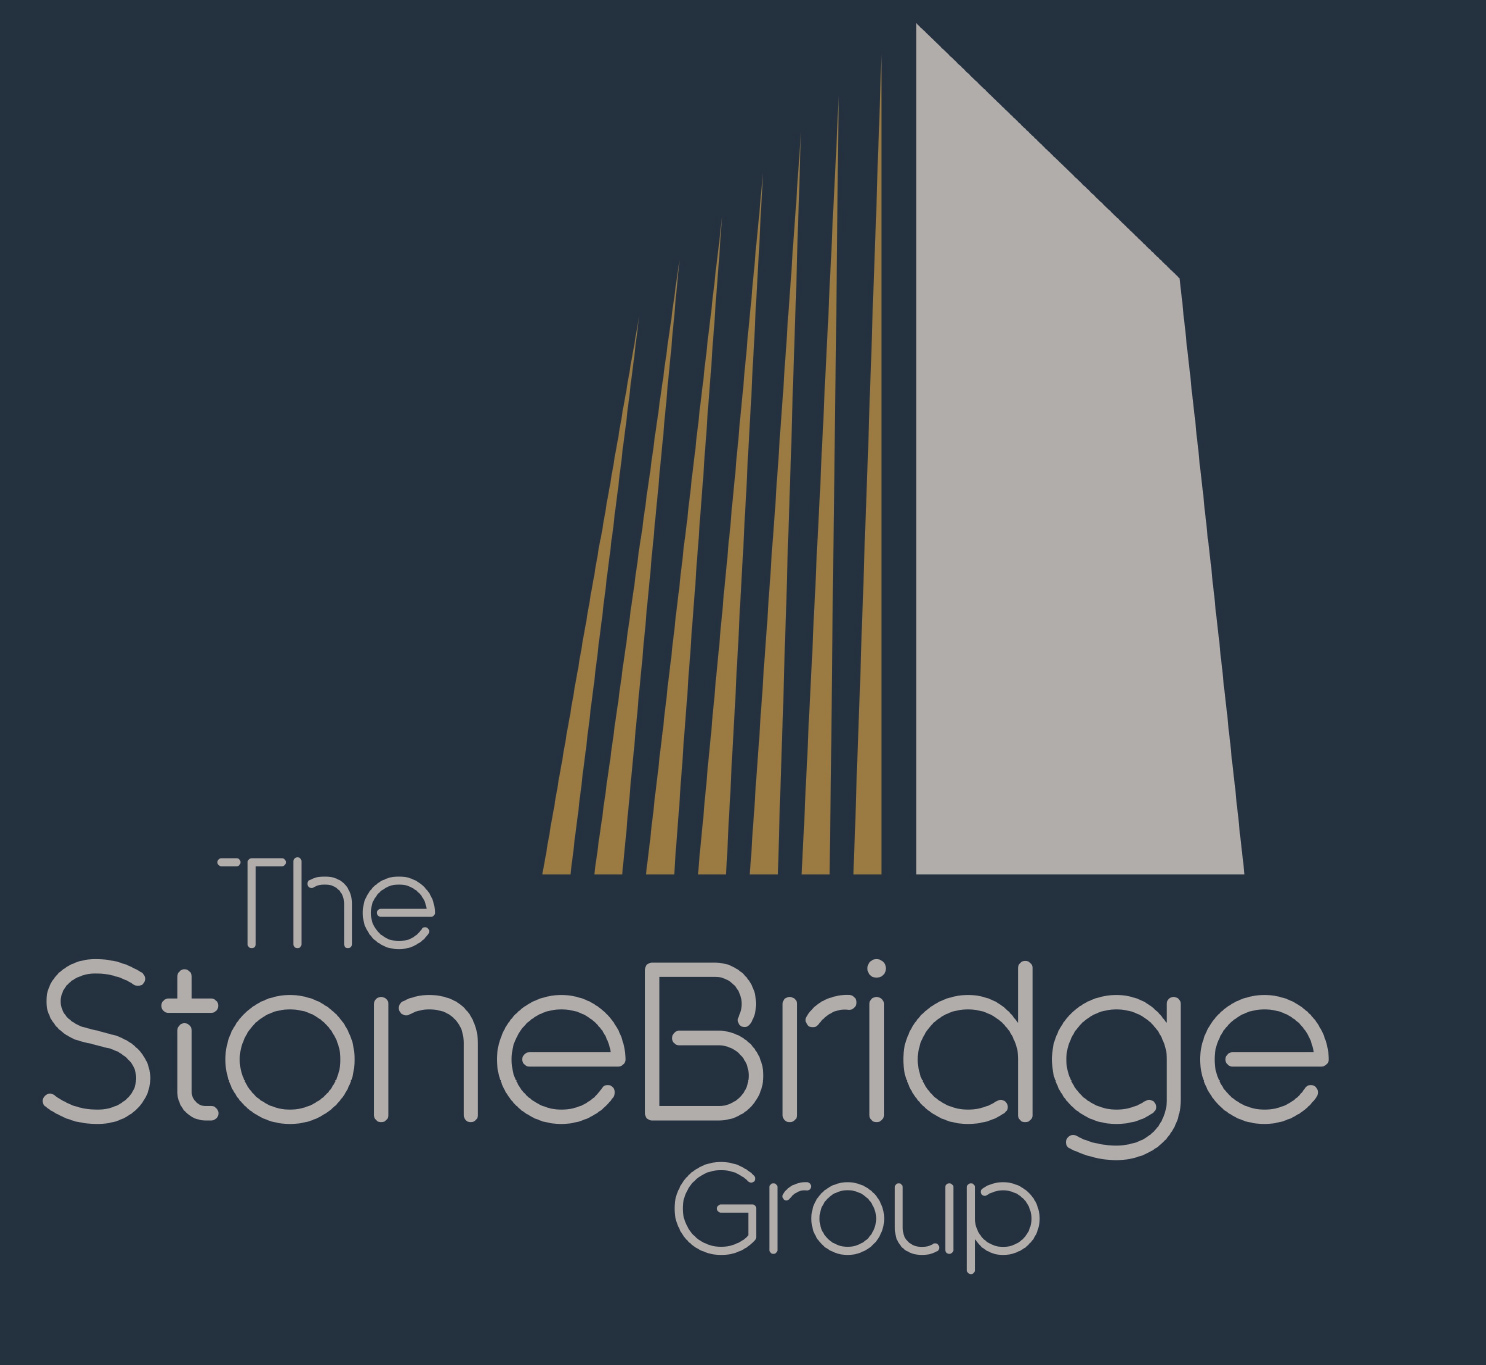 The Stonebridge Group LLC